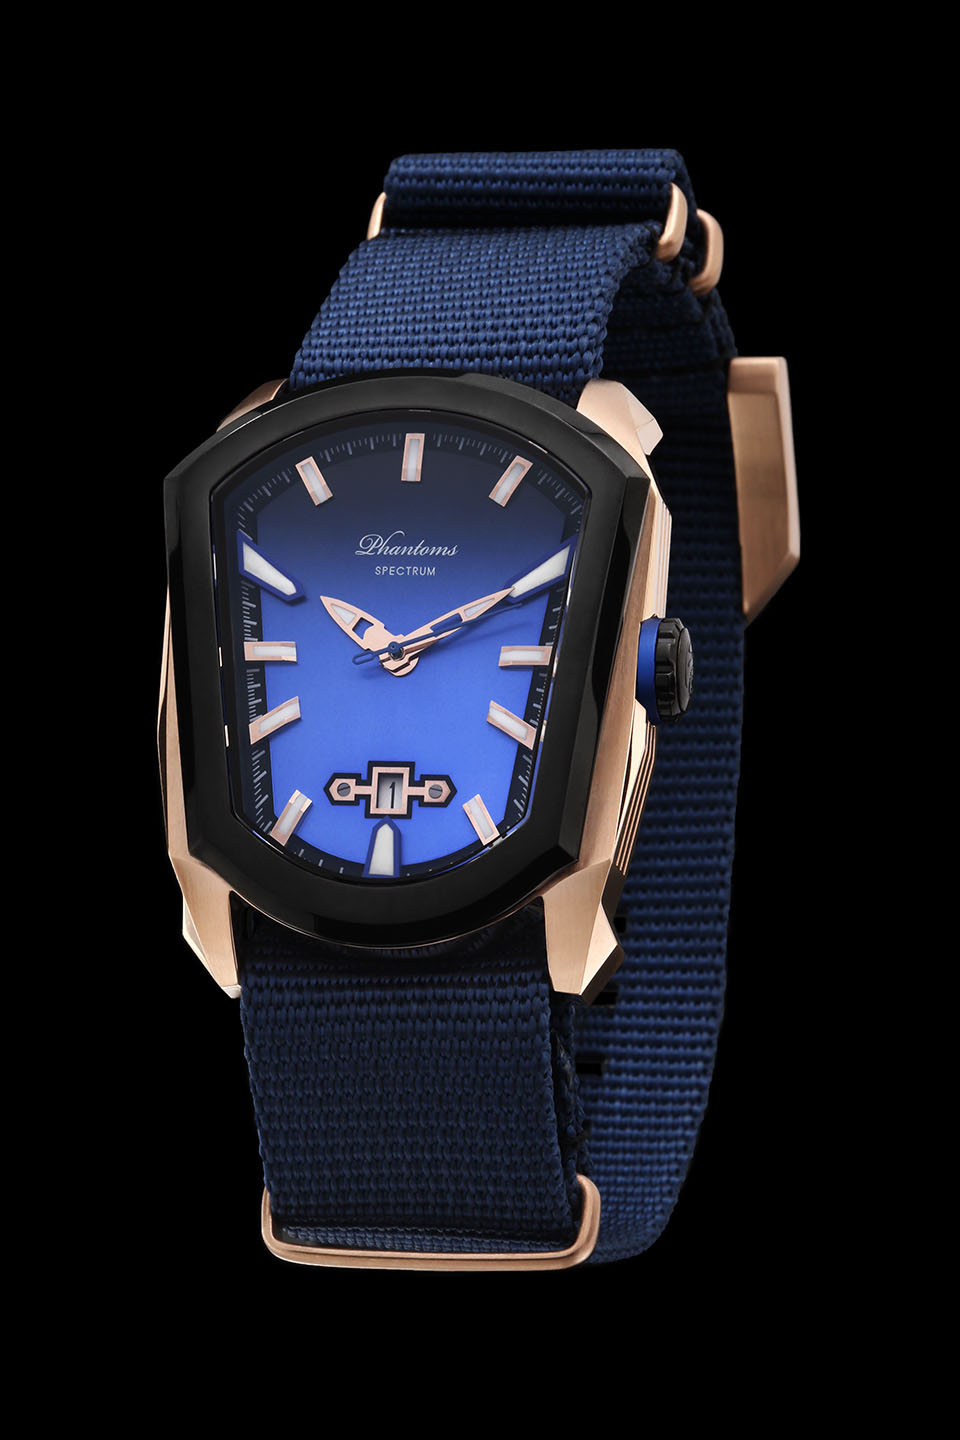 PHTW401 Phantoms skyfall Spectrum miyota automatic mechanical watch